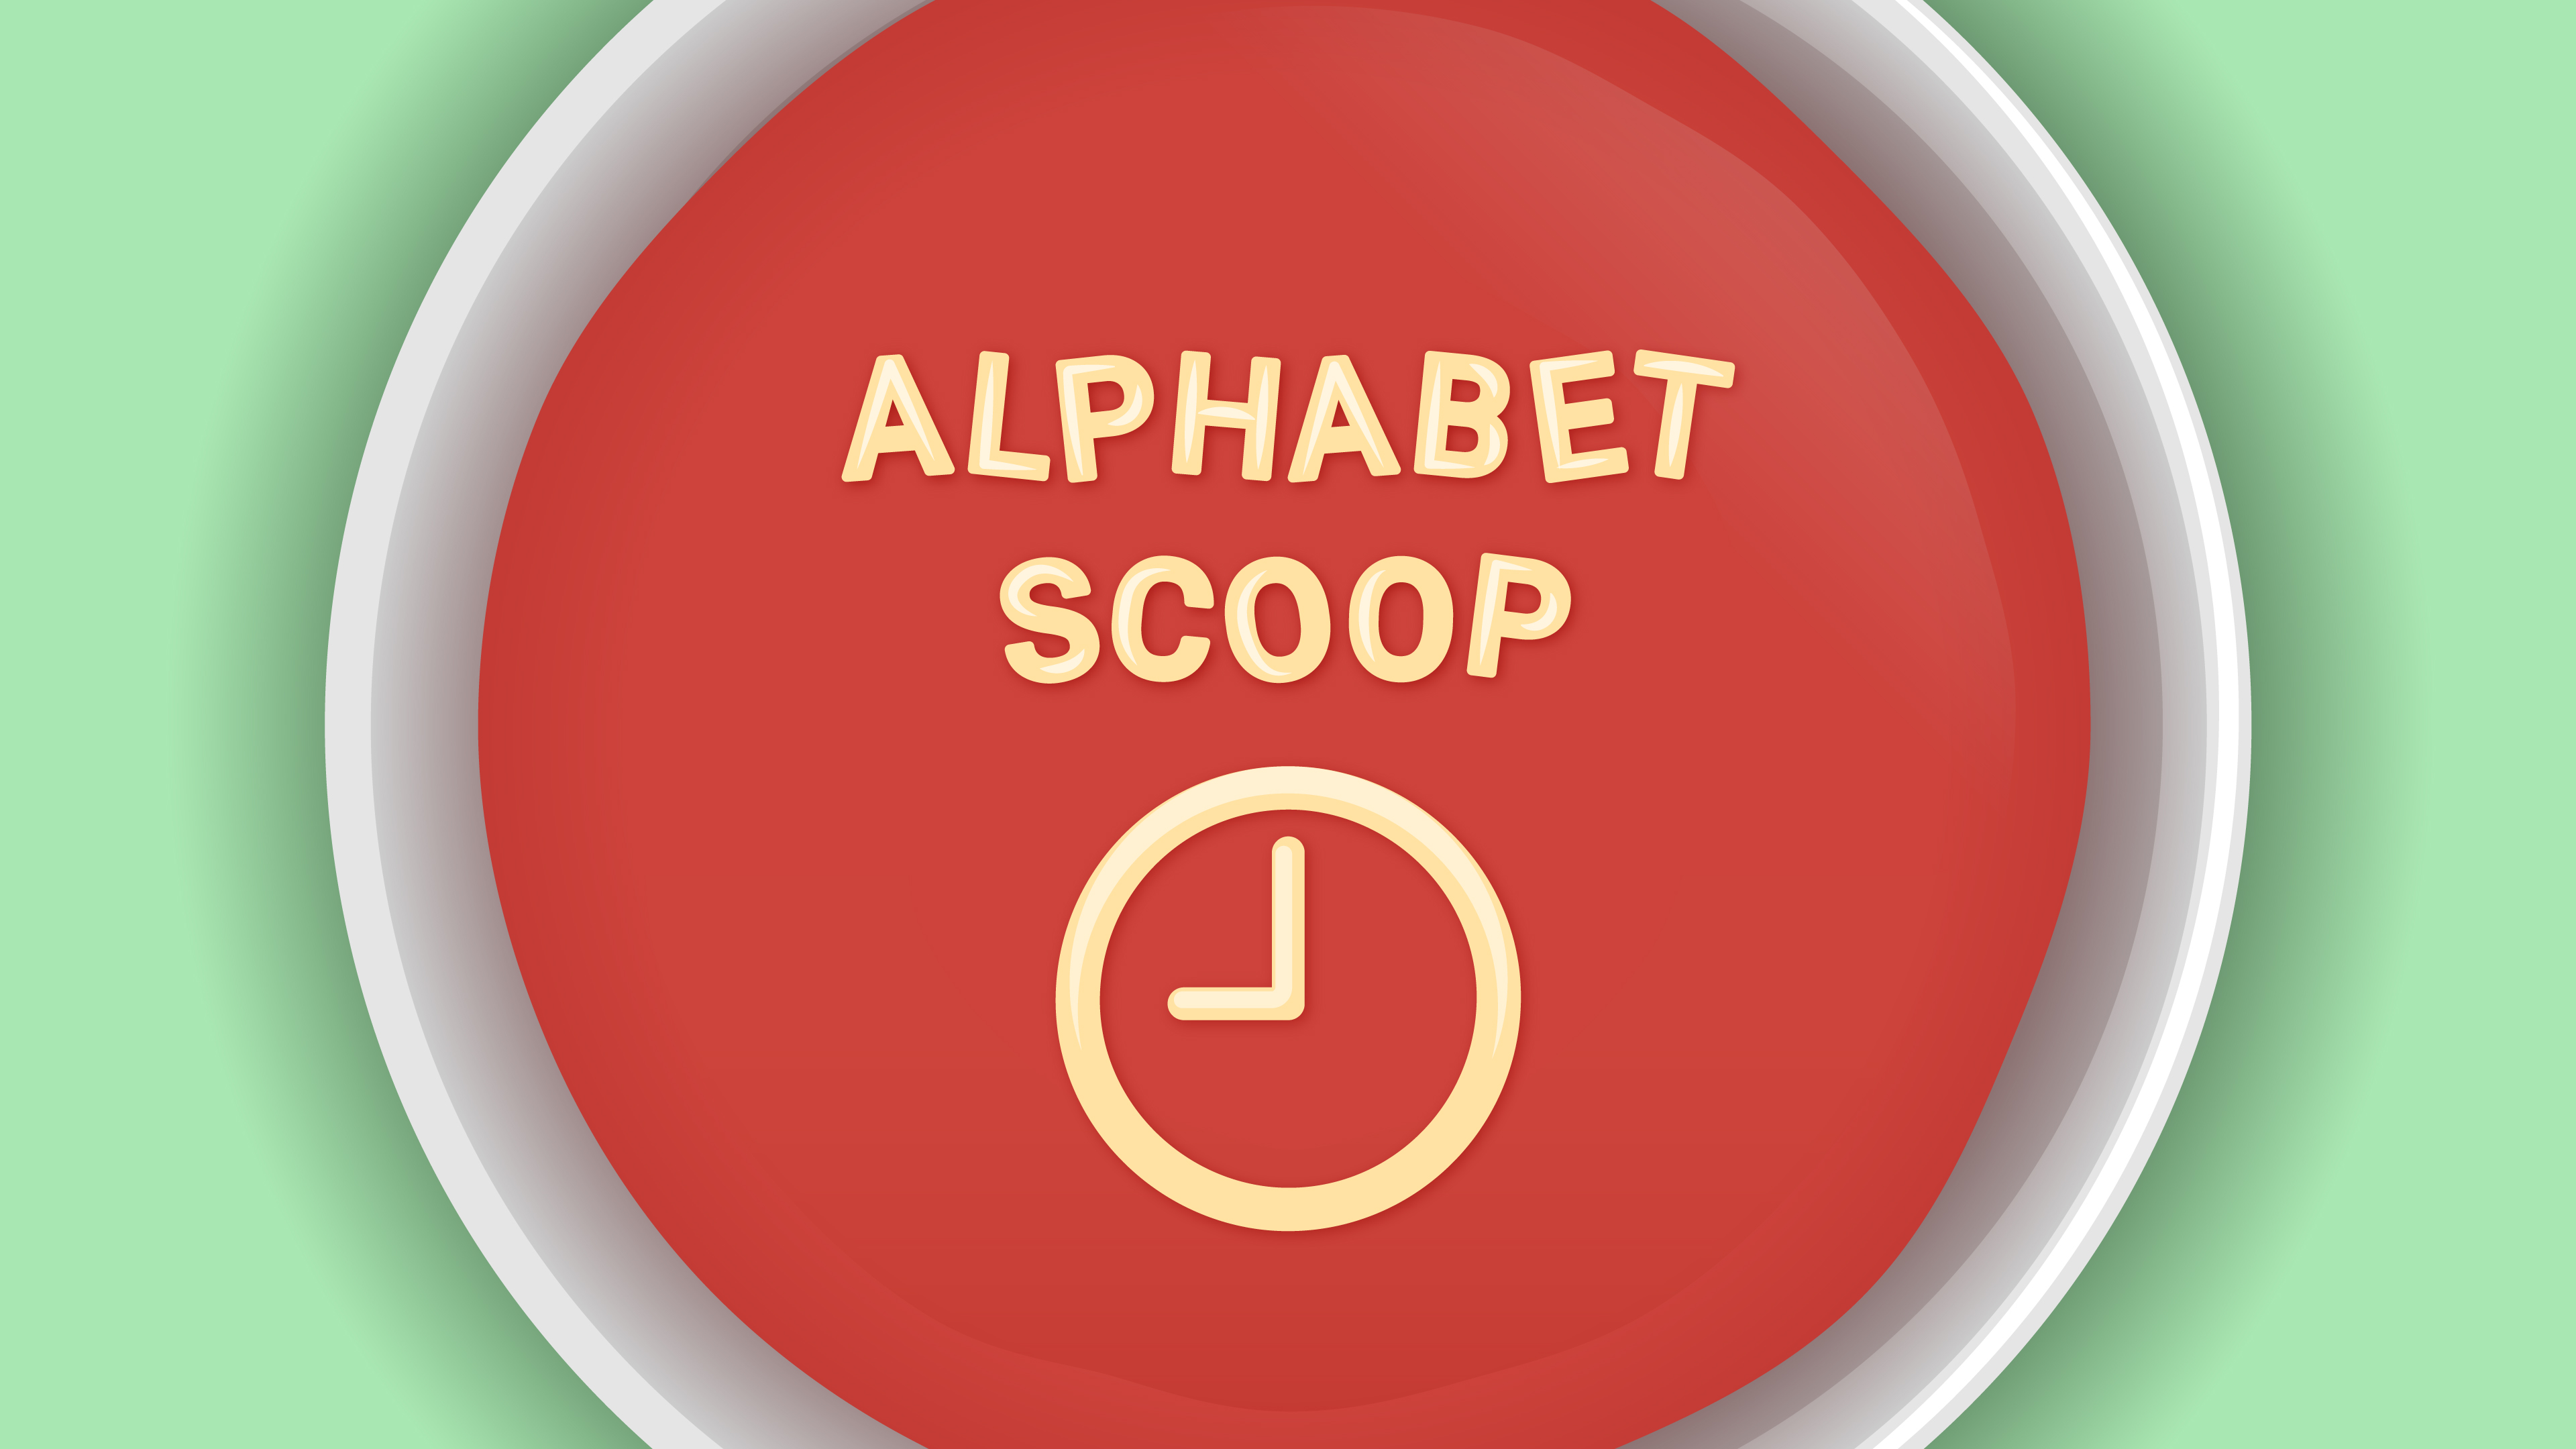 alphabet scoop 024 pixelbook 2 puzzle yeti game streaming service google pixel 3 teases